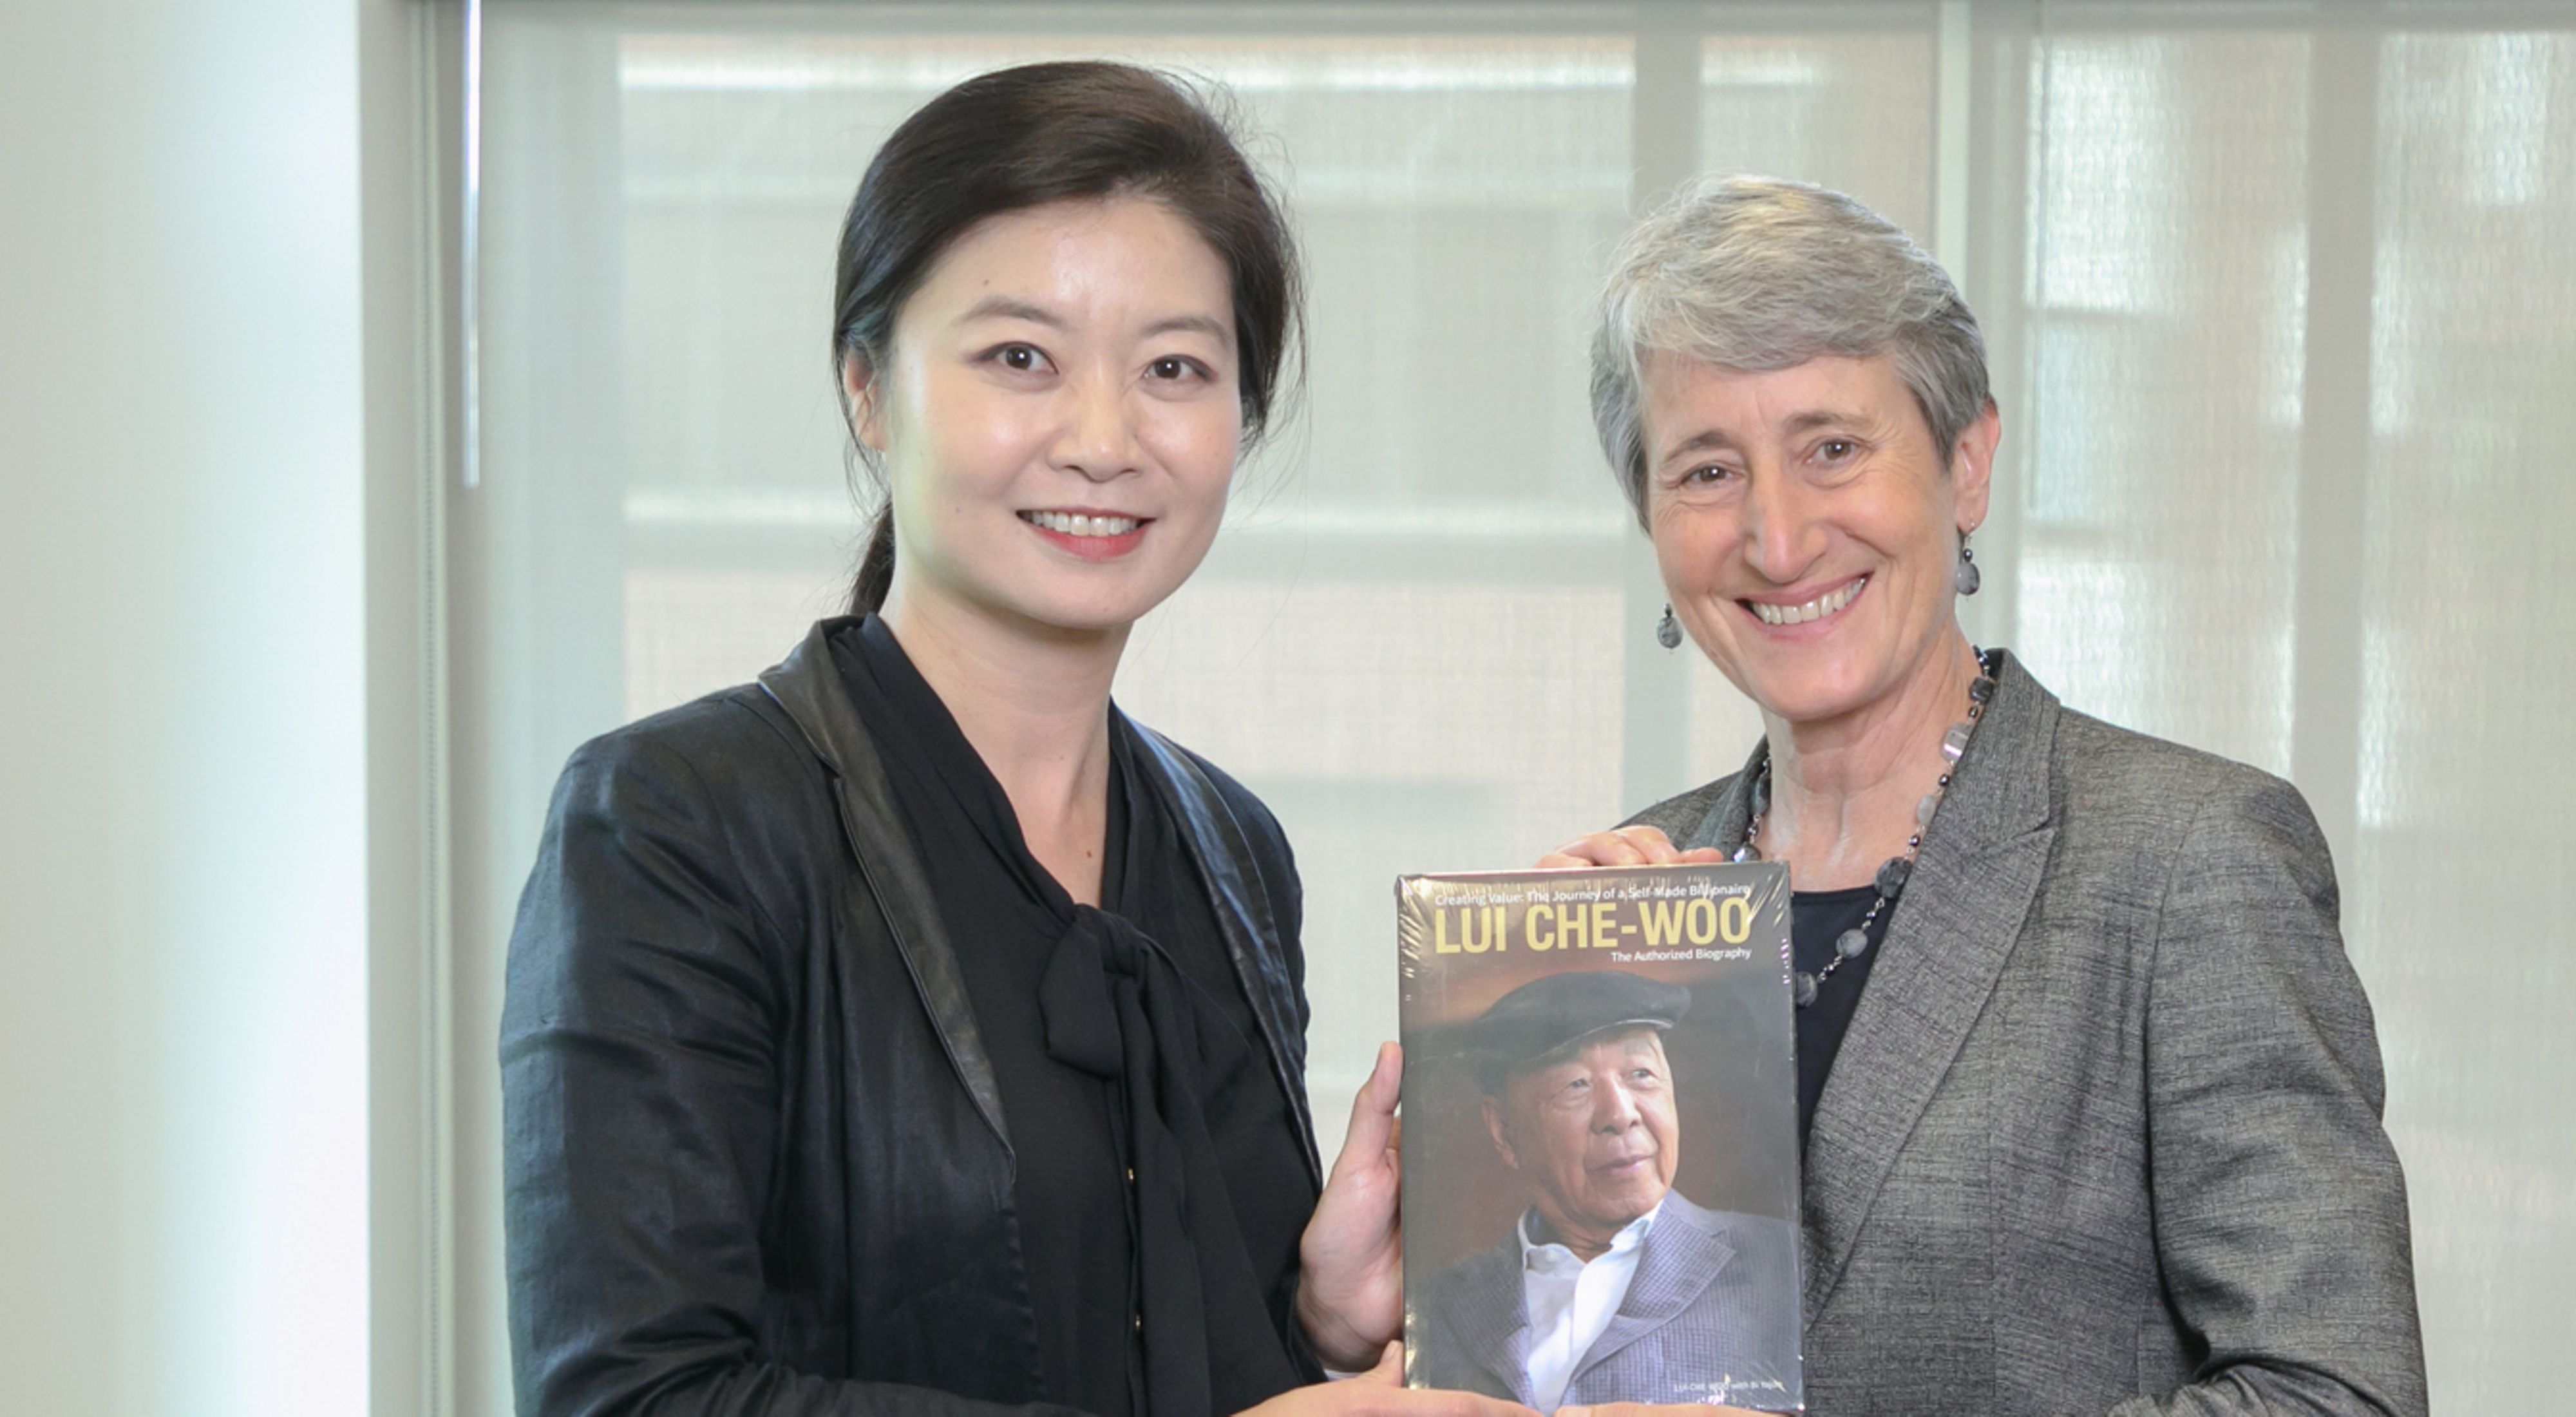 for Sustainability was awarded to TNC. LUI Che Woo Prize General Manager Yvonne Lai (left) met with TNC CEO Sally Jewell (right) at our Worldwide Office in Arlington, Virginia